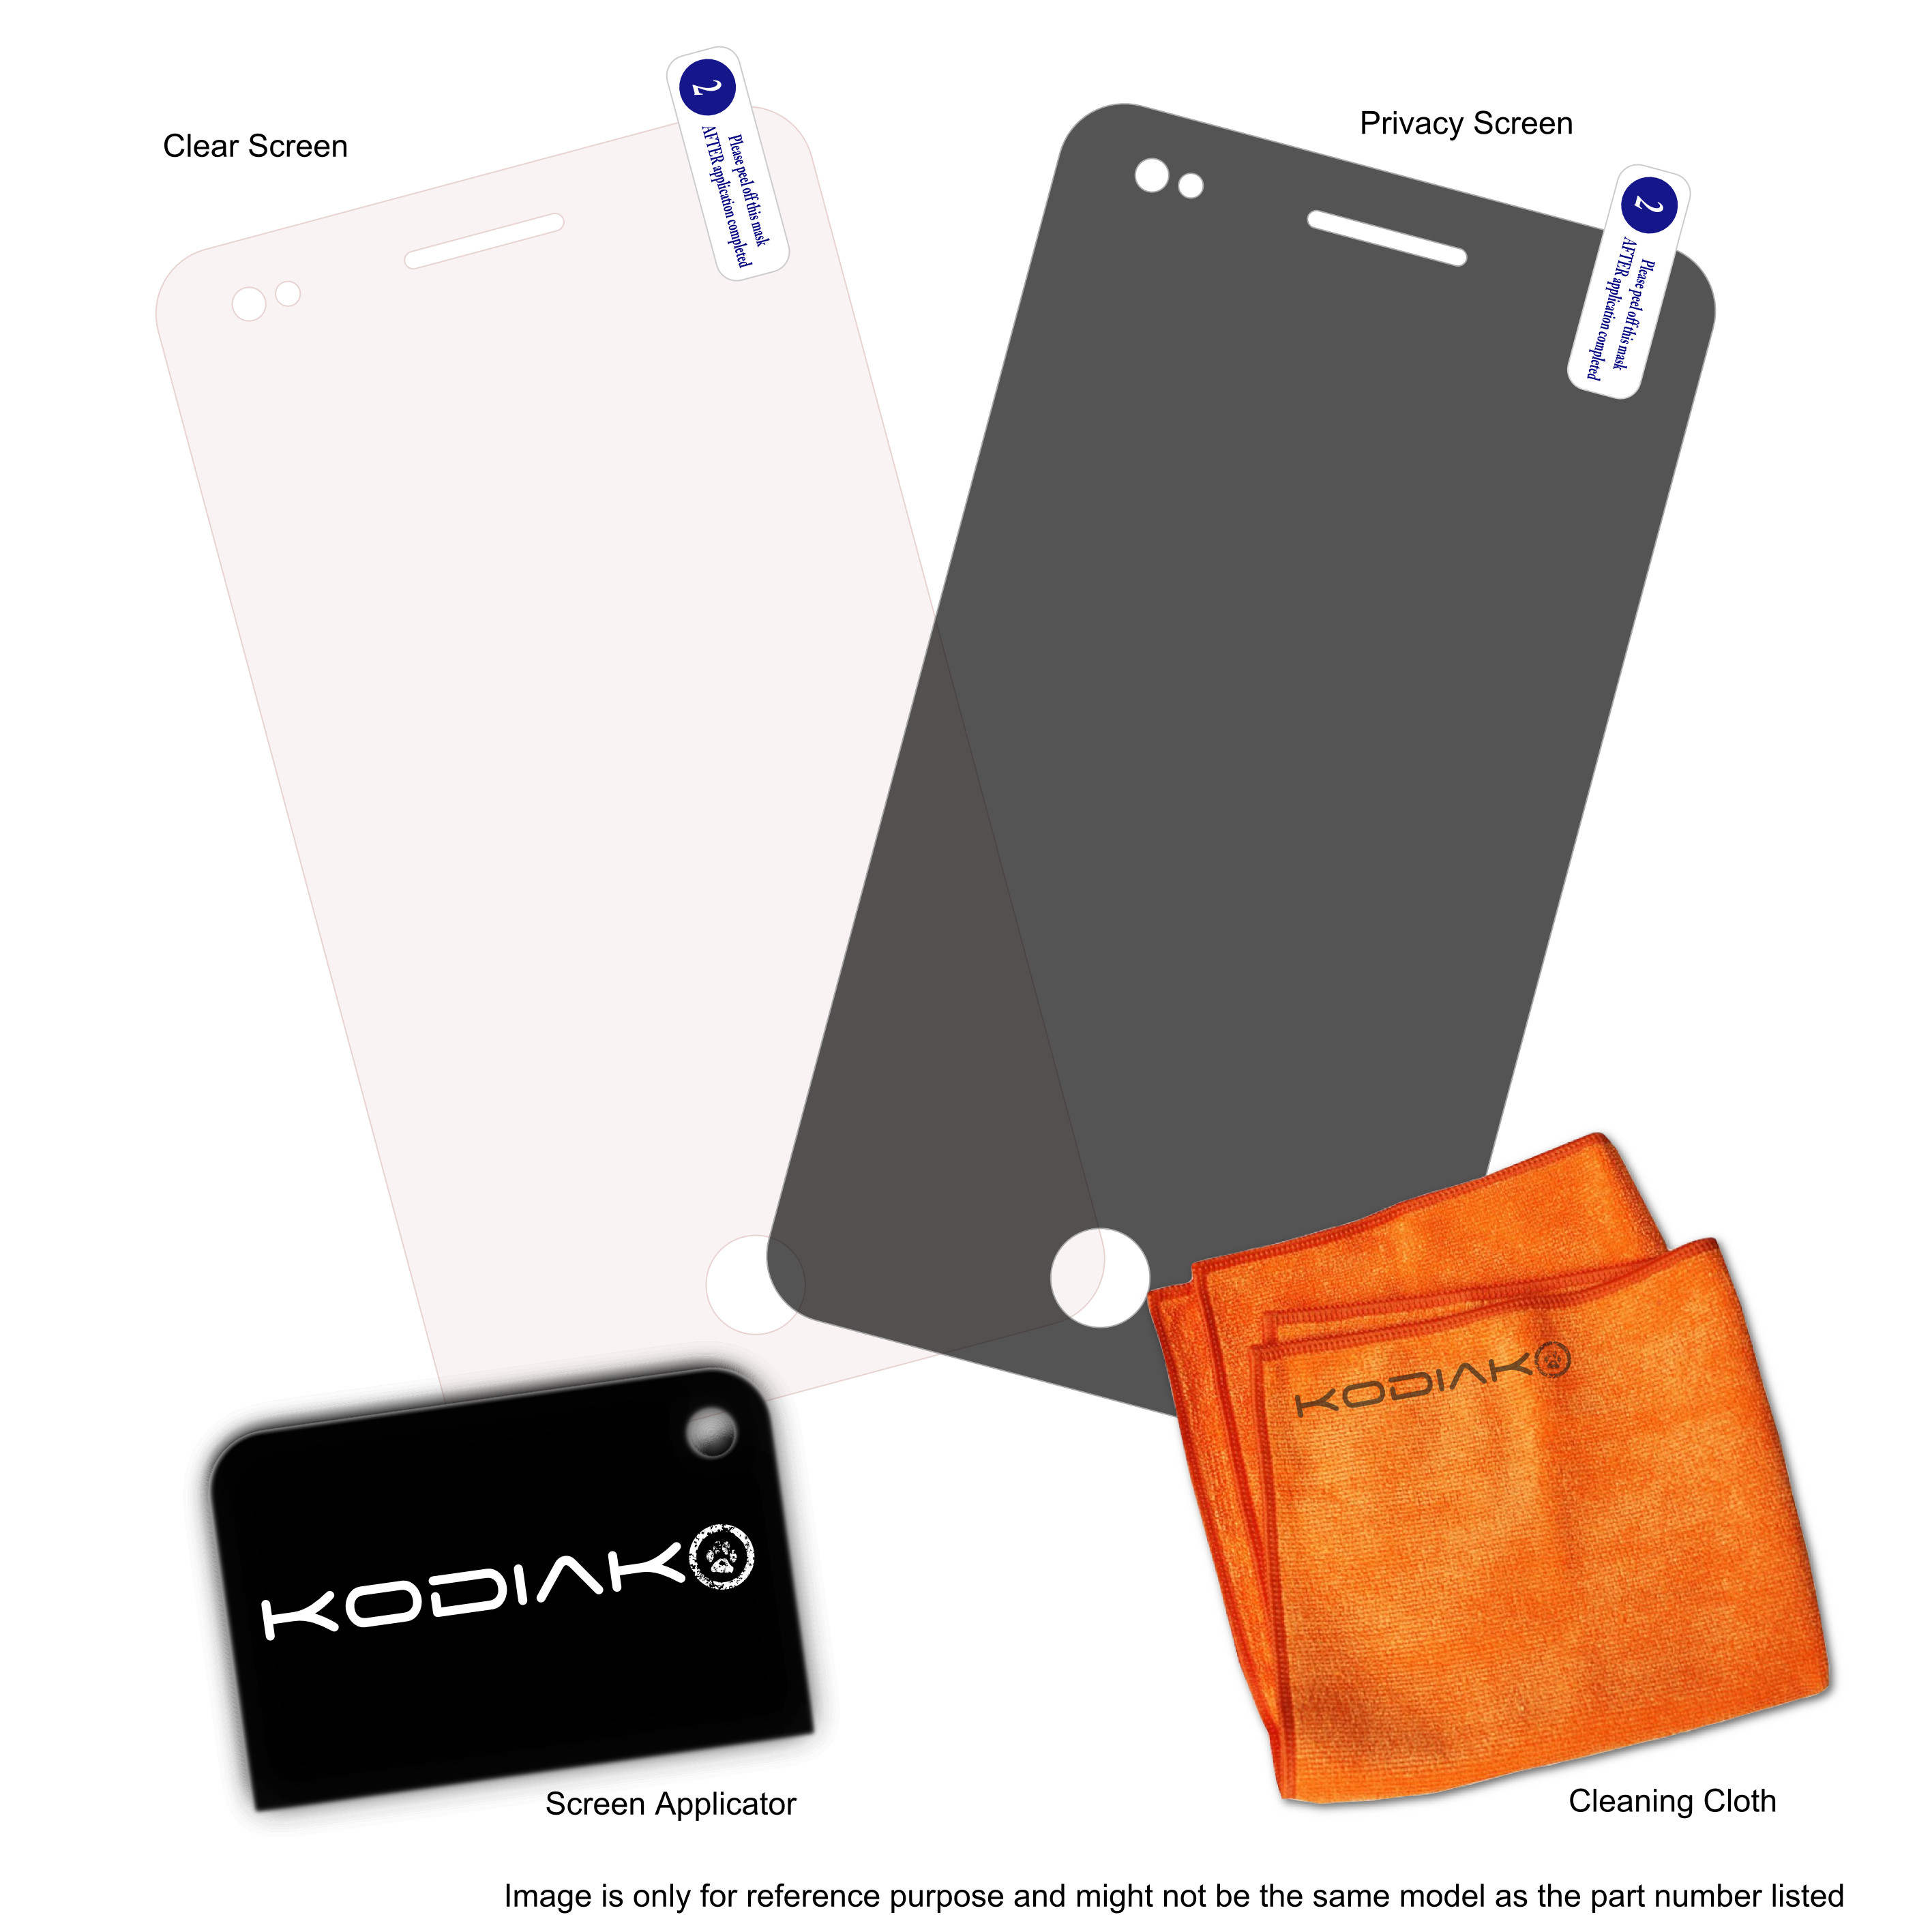 Original Kodiak Screen Protector Sony Xperia S iProtect 2-Package (Clear + Privacy)